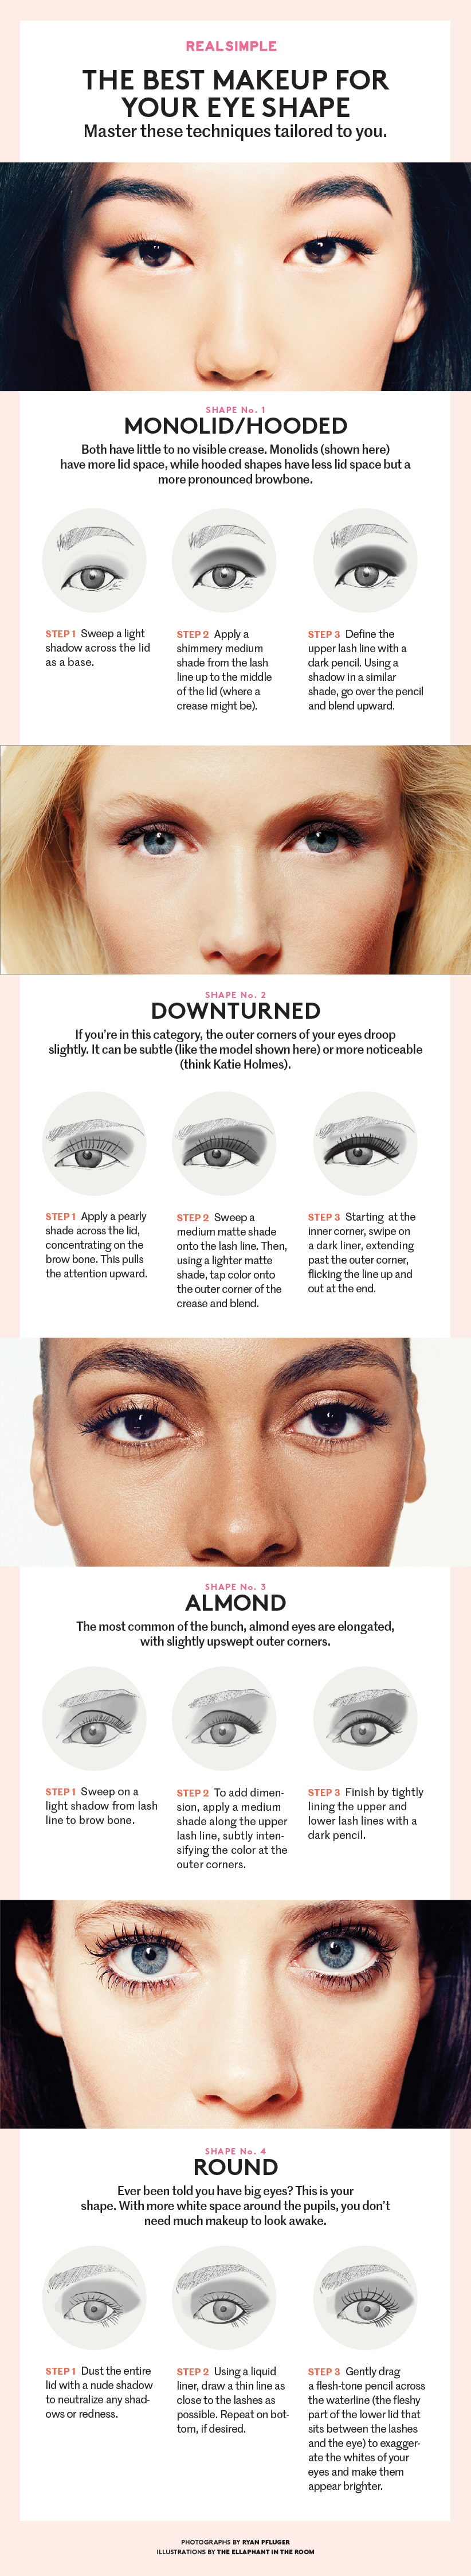 How to Do Makeup for Monolids or Hooded Lids, According to Makeup